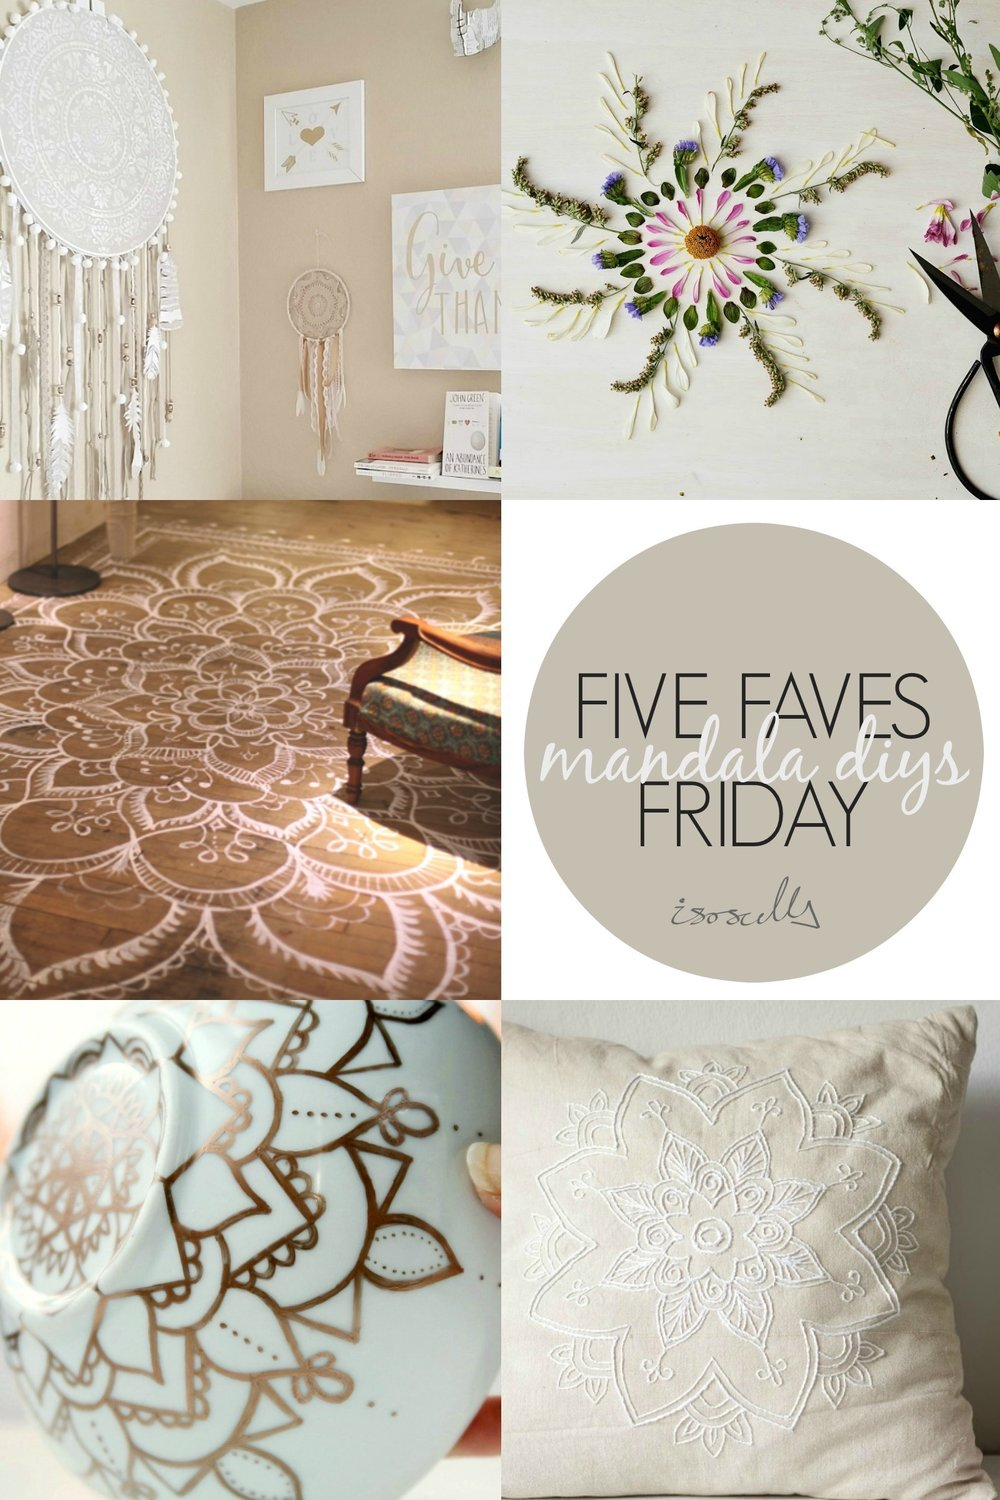 Five Faves Friday Mandala DIYs